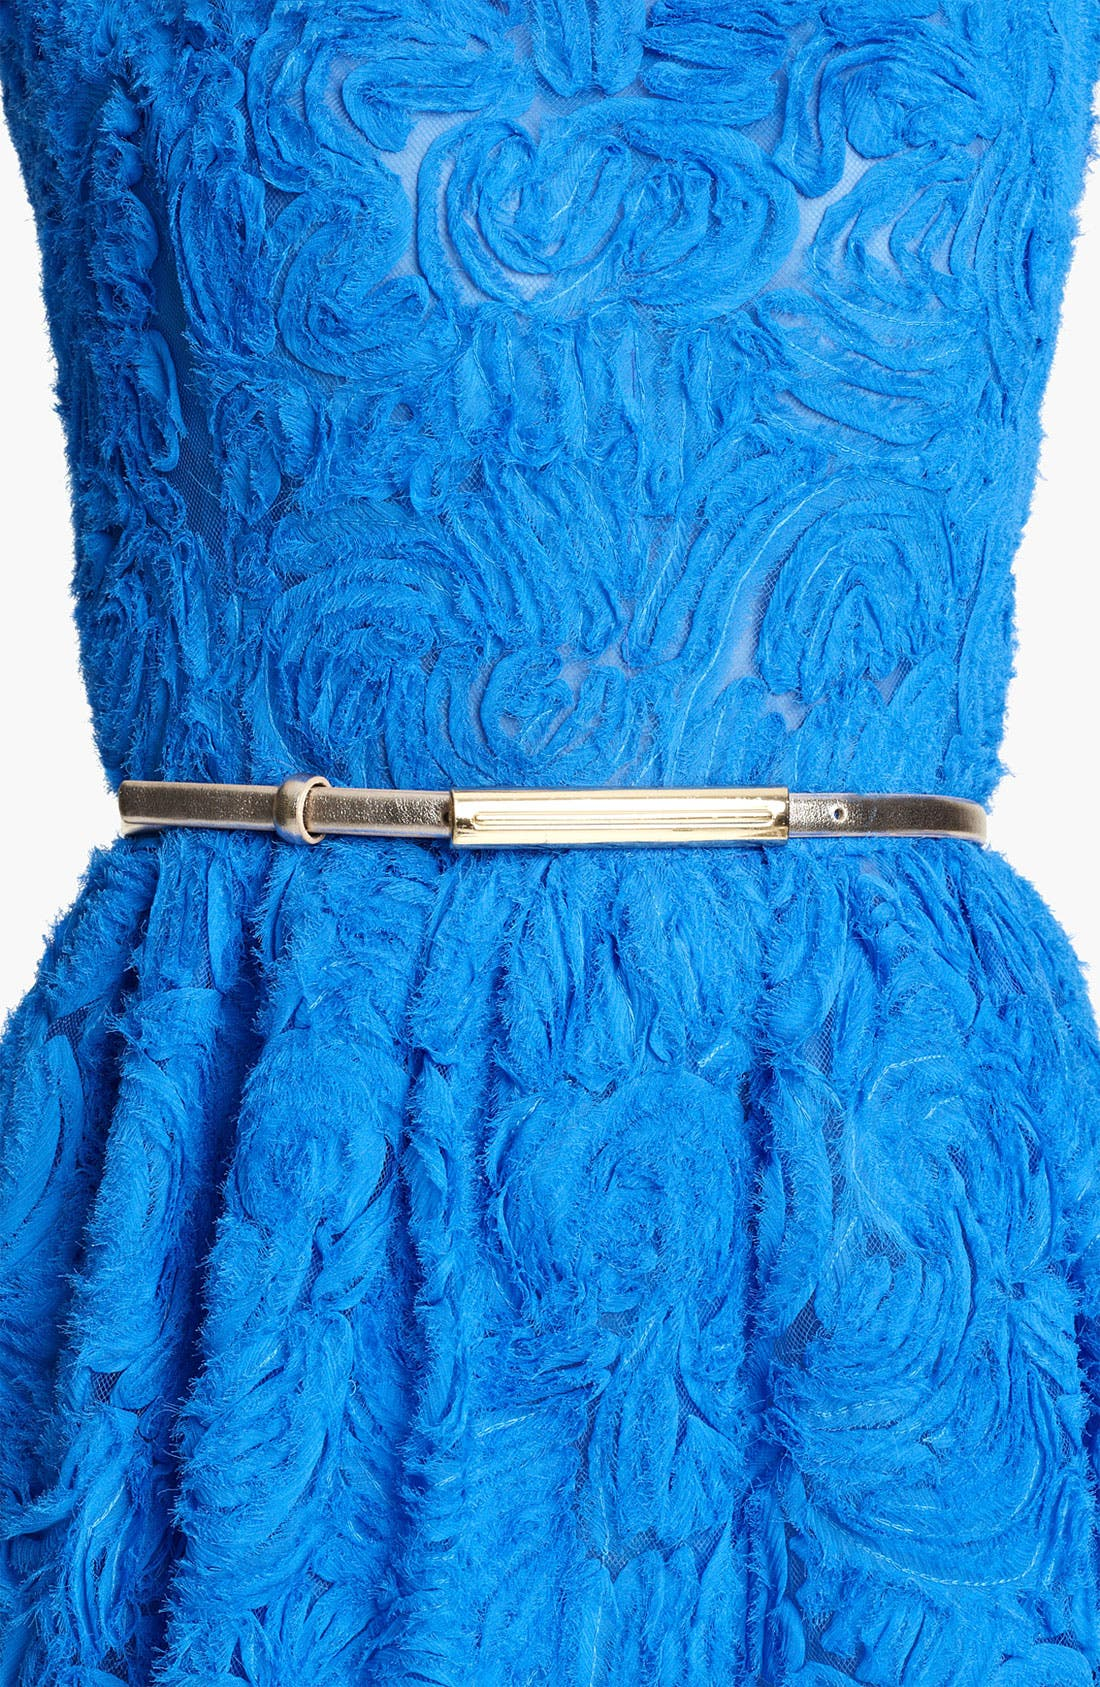 Alternate Image 1 Selected - Oscar de la Renta Metallic Leather Belt